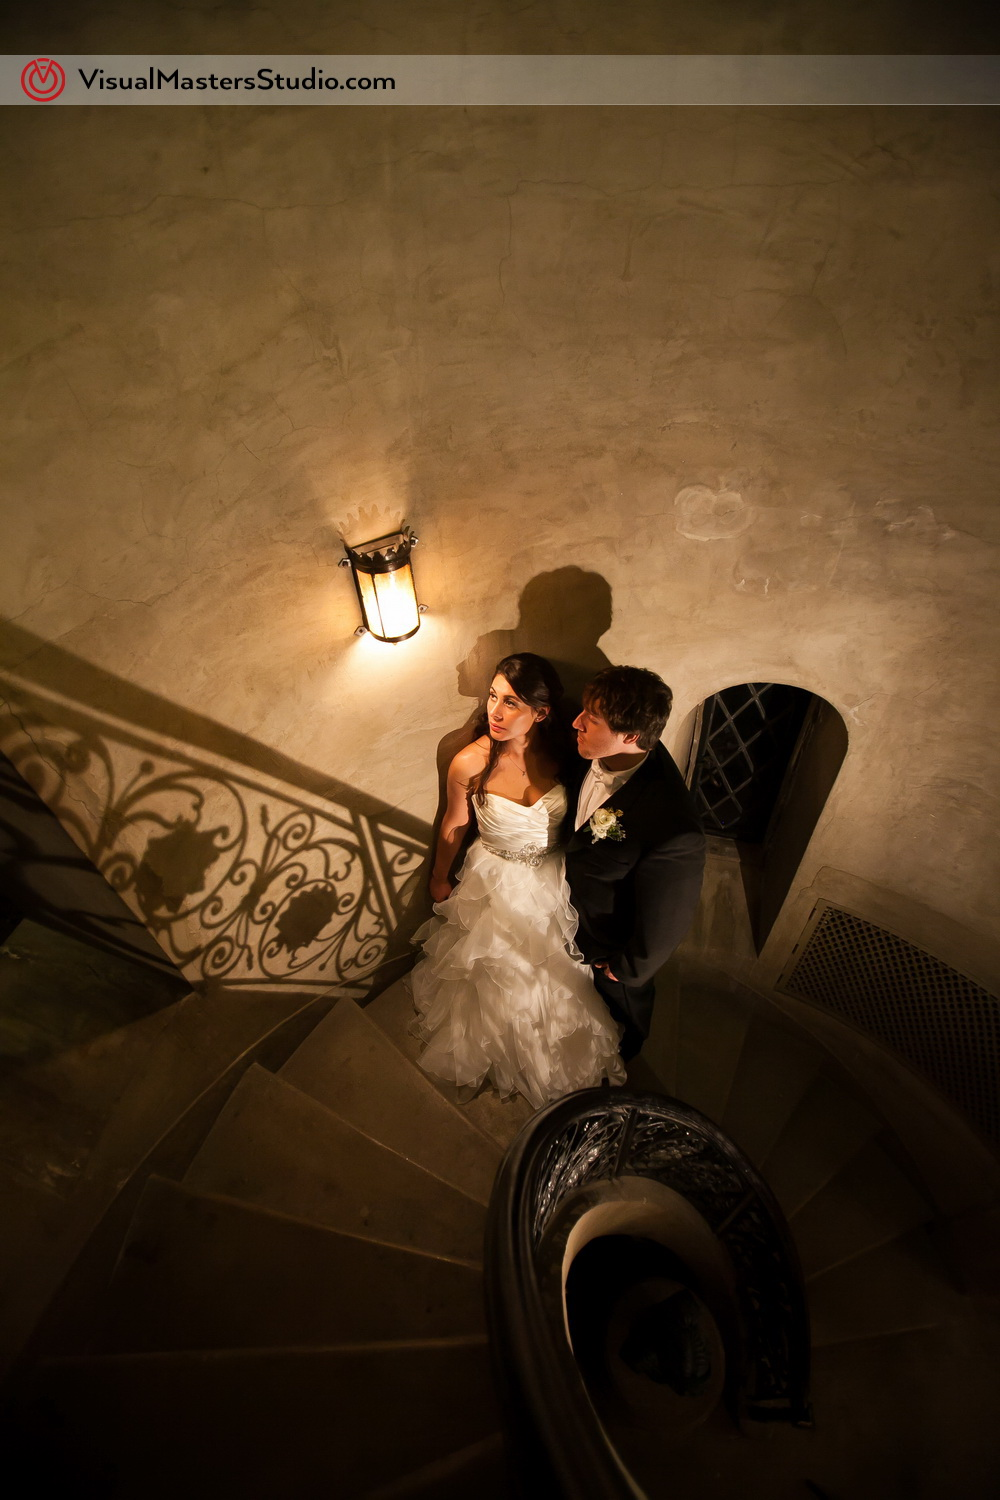 On the steps at The Castle at Skylands Manor by Visual Masters